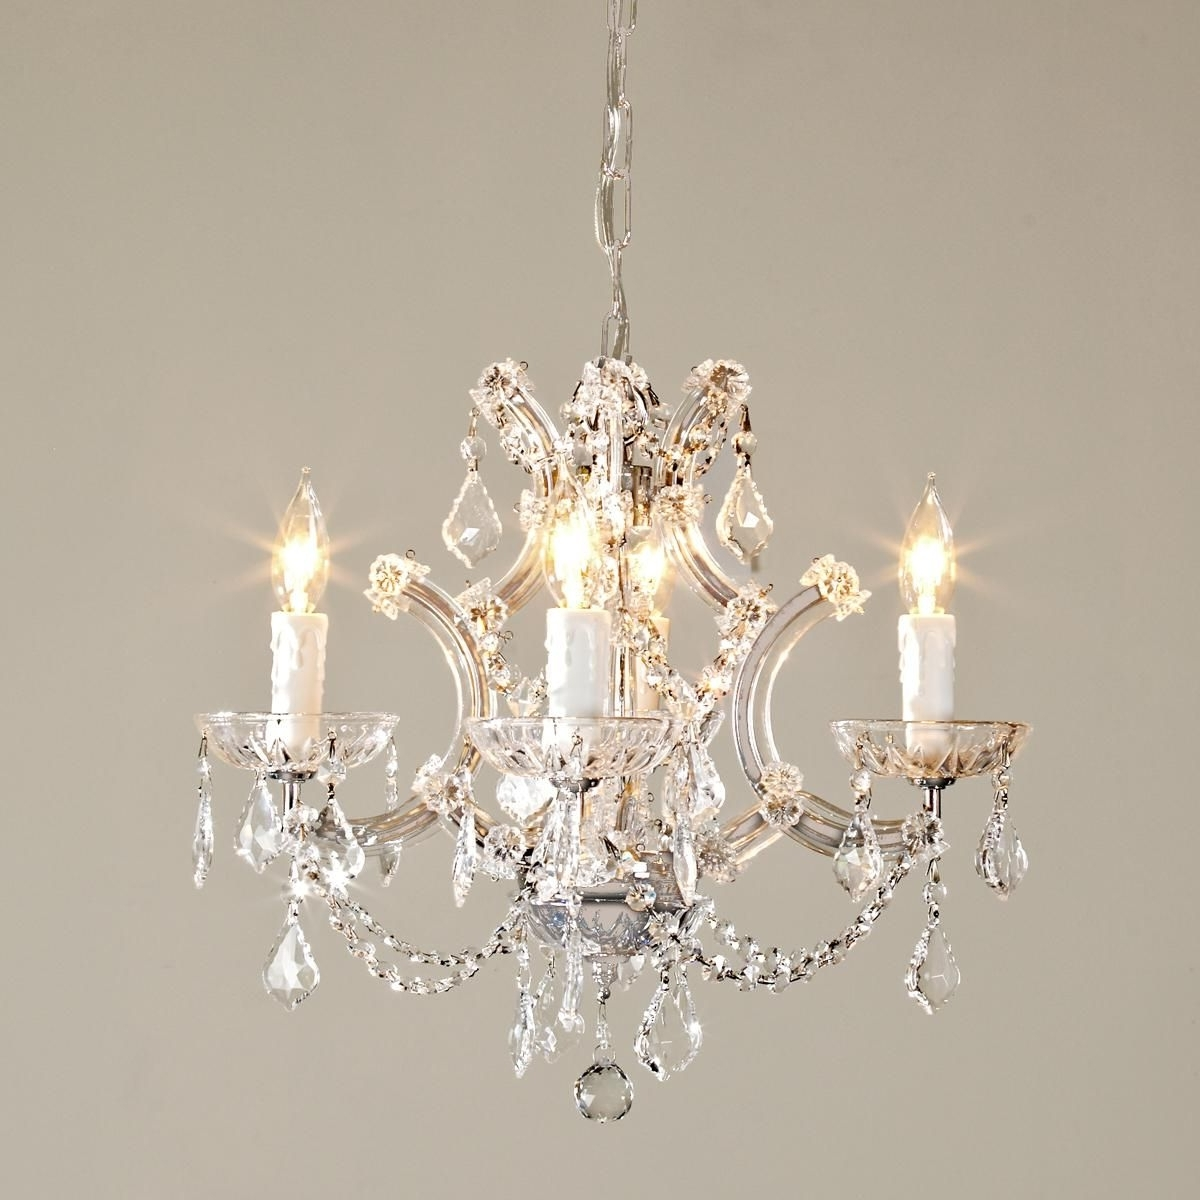 Chandeliers, Choices And Rounding For Crystal Chandelier Bathroom Lighting (View 17 of 20)